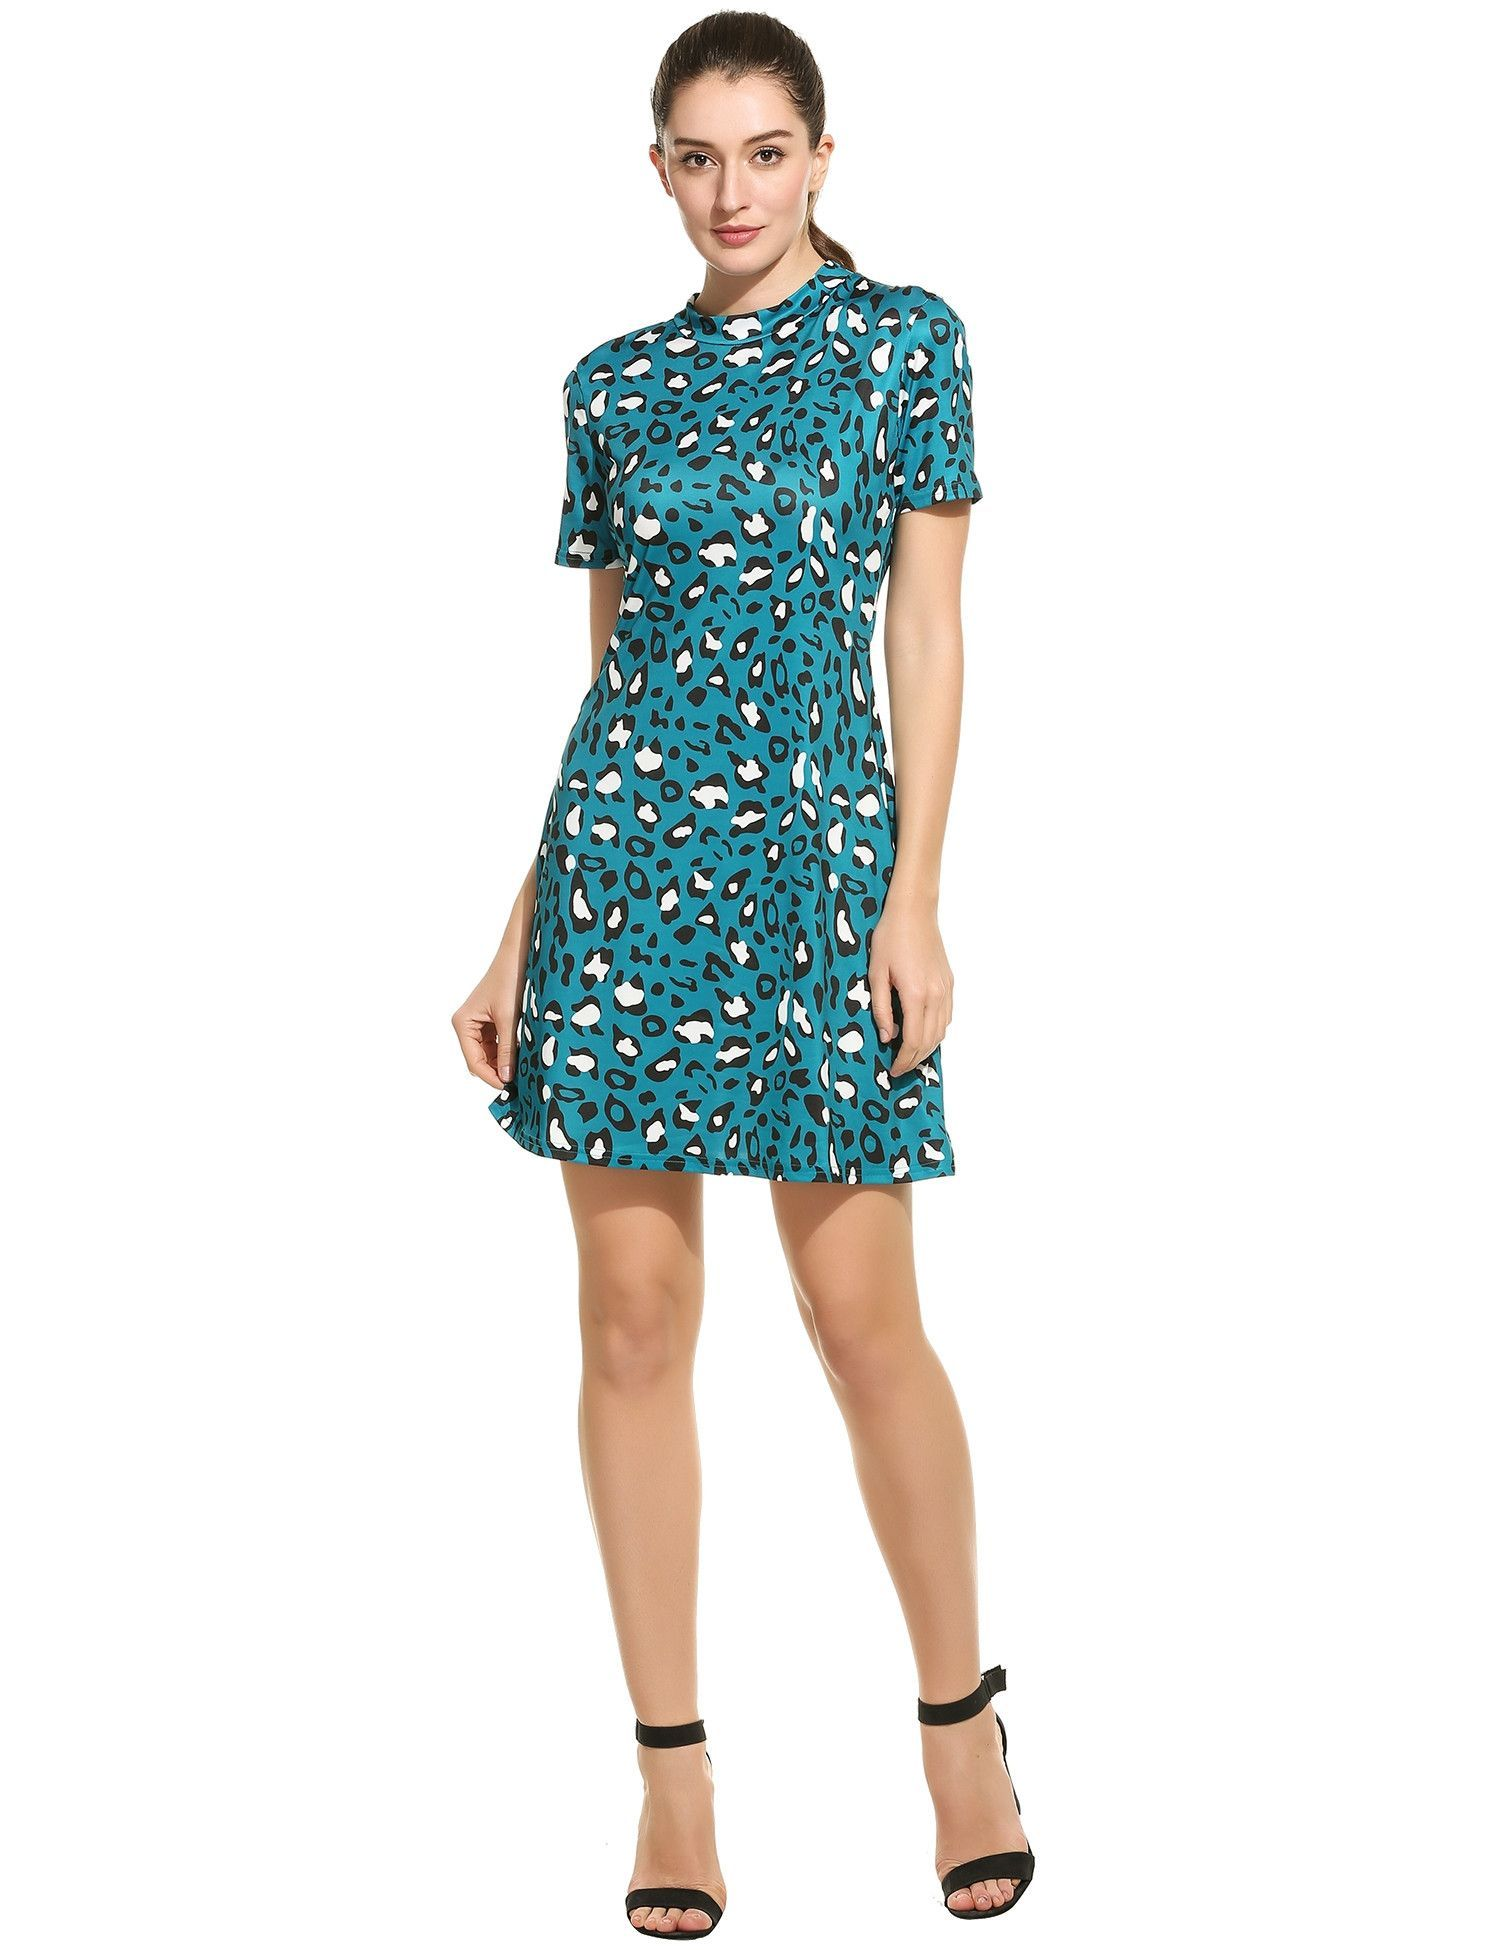 Lake blue stand collar short sleeve leopard prints pleated casual